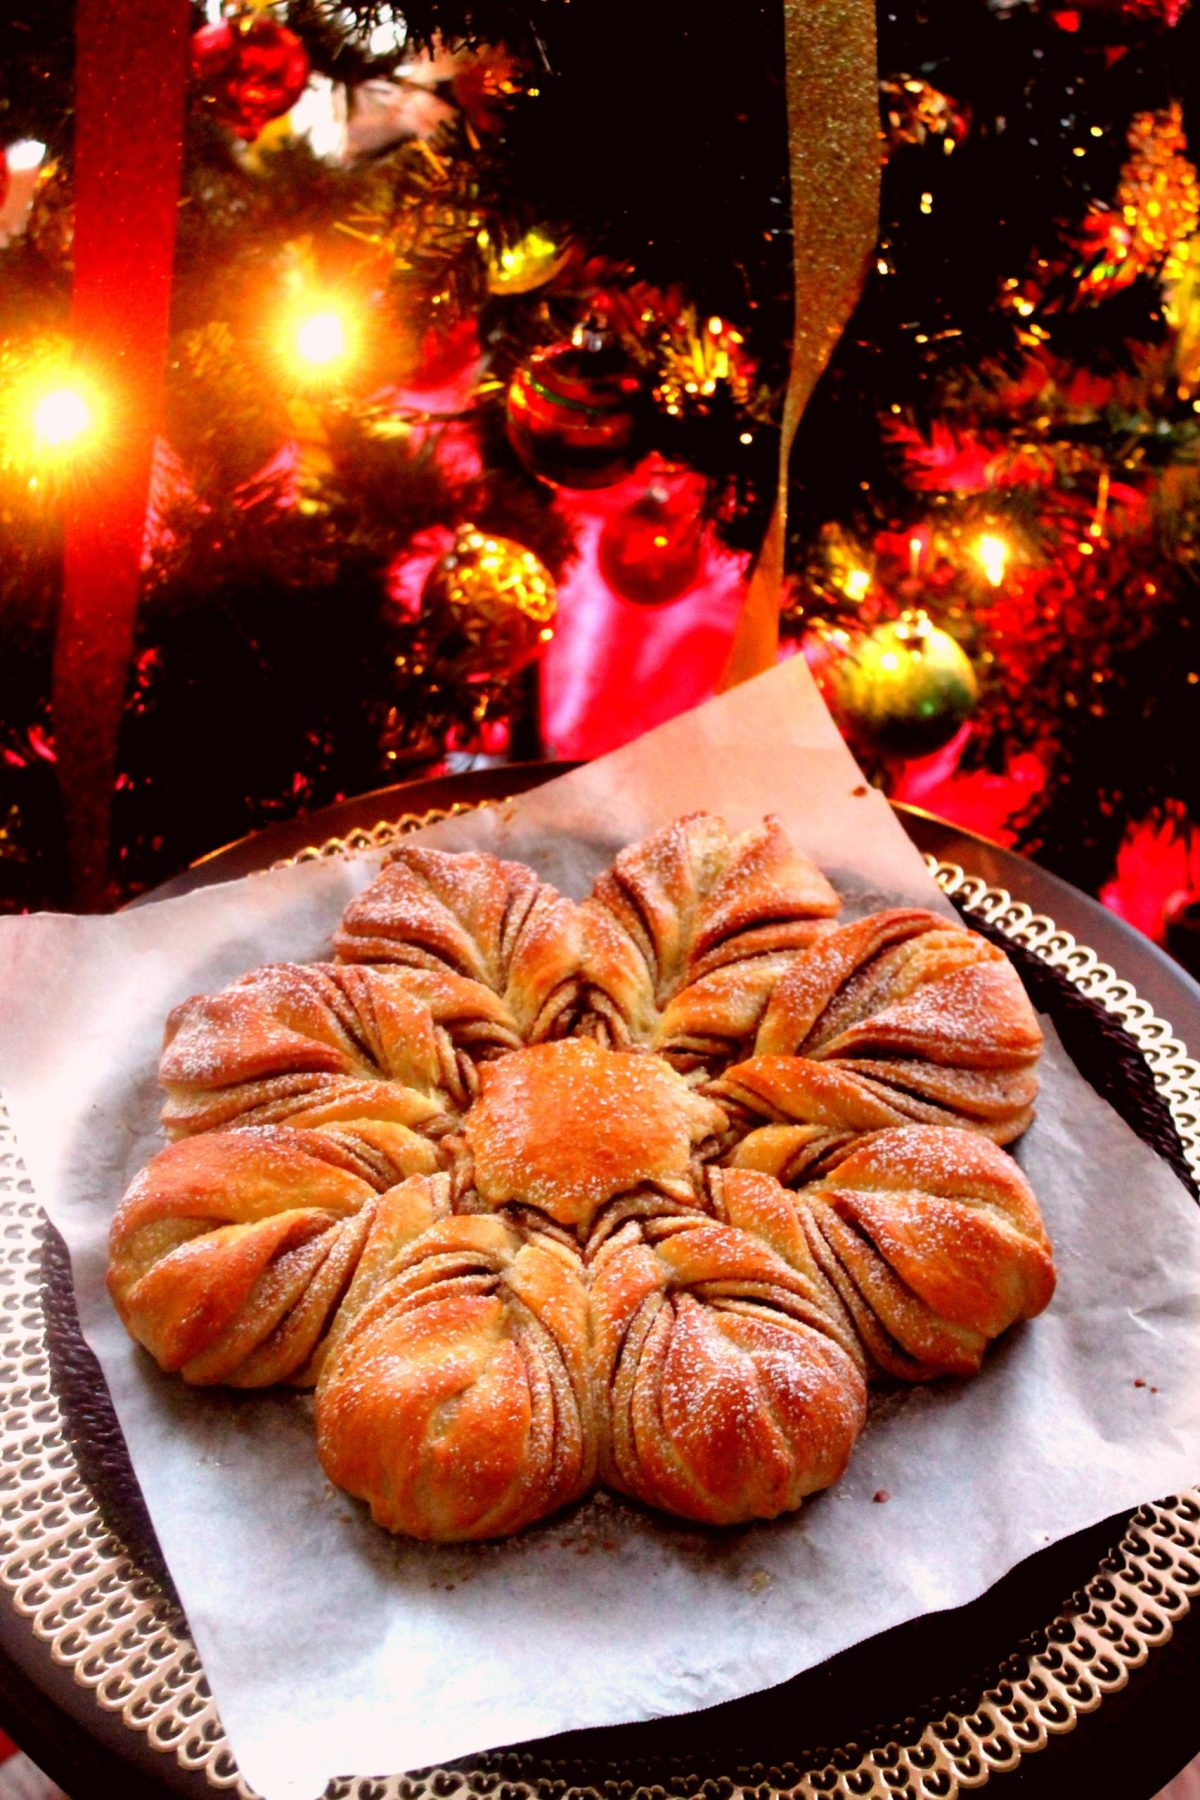 Star Bread